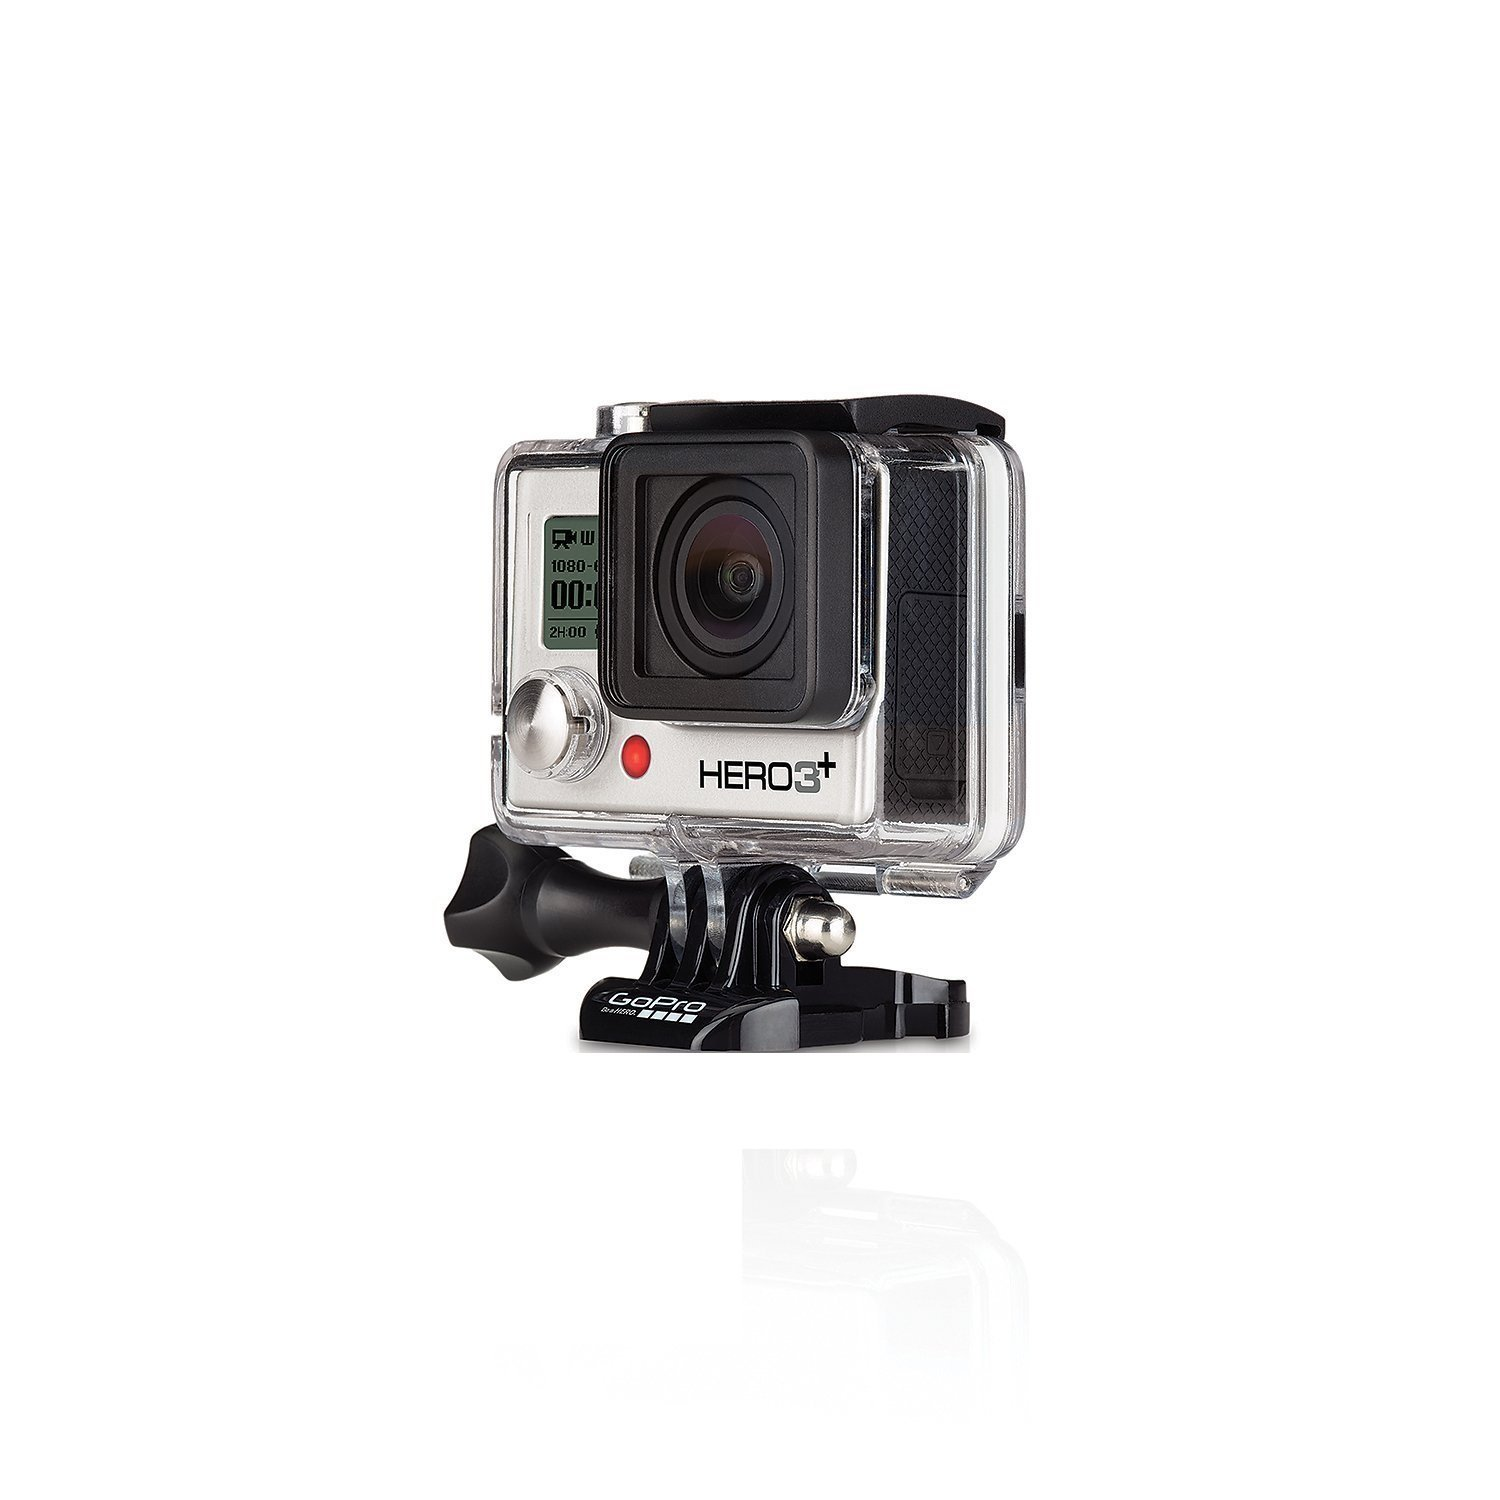 GoPro HERO3+: Silver Edition by GoPro